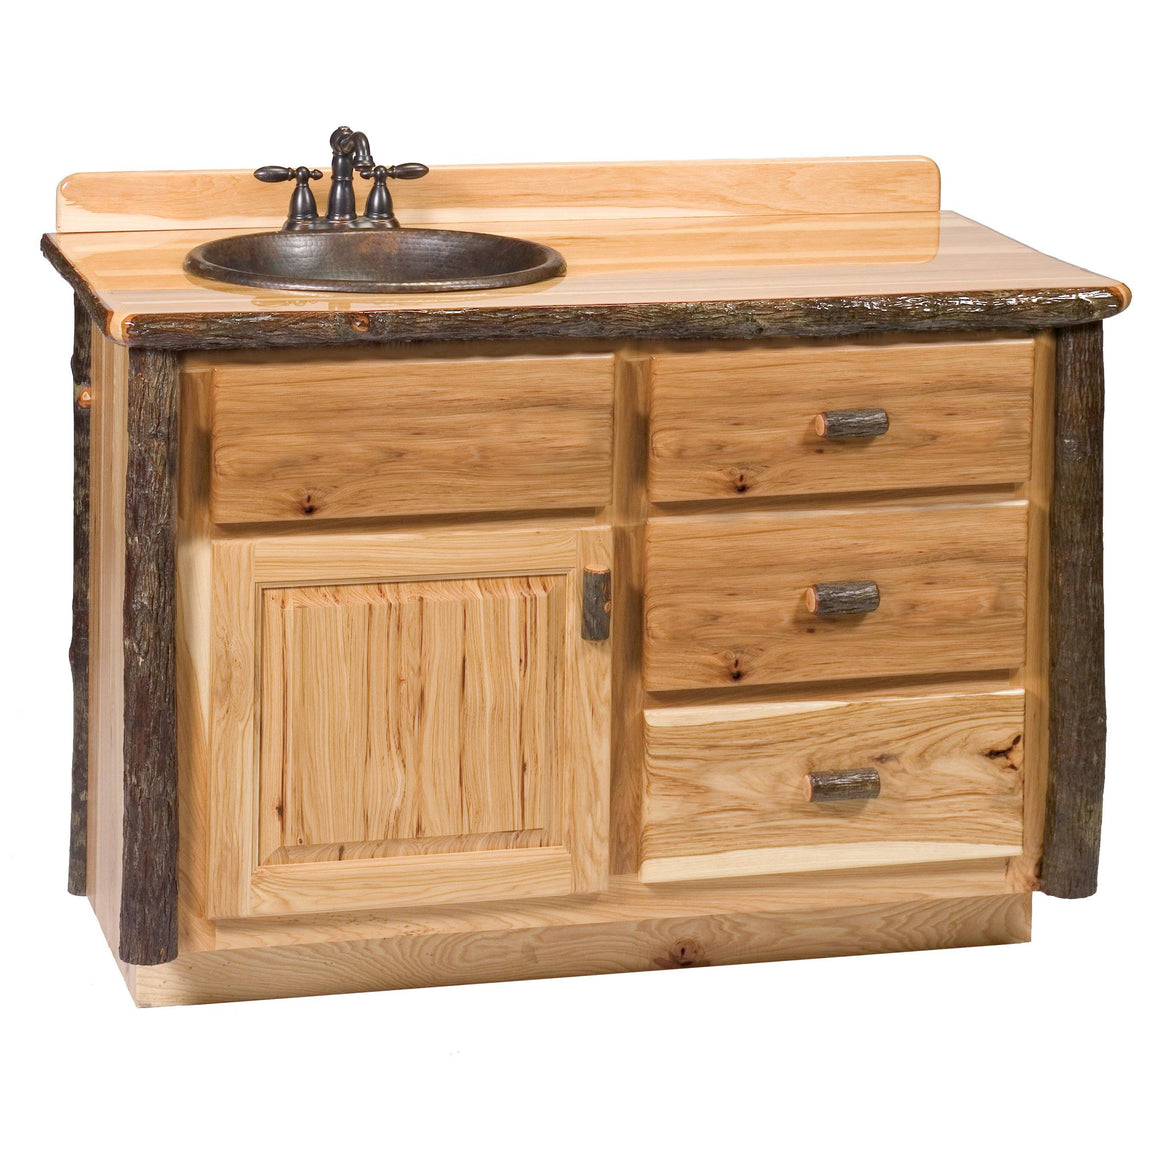 Hickory Log Vanity - 36, 42, 48 Inch without Top - Sink Left - Rustic Deco Incorporated